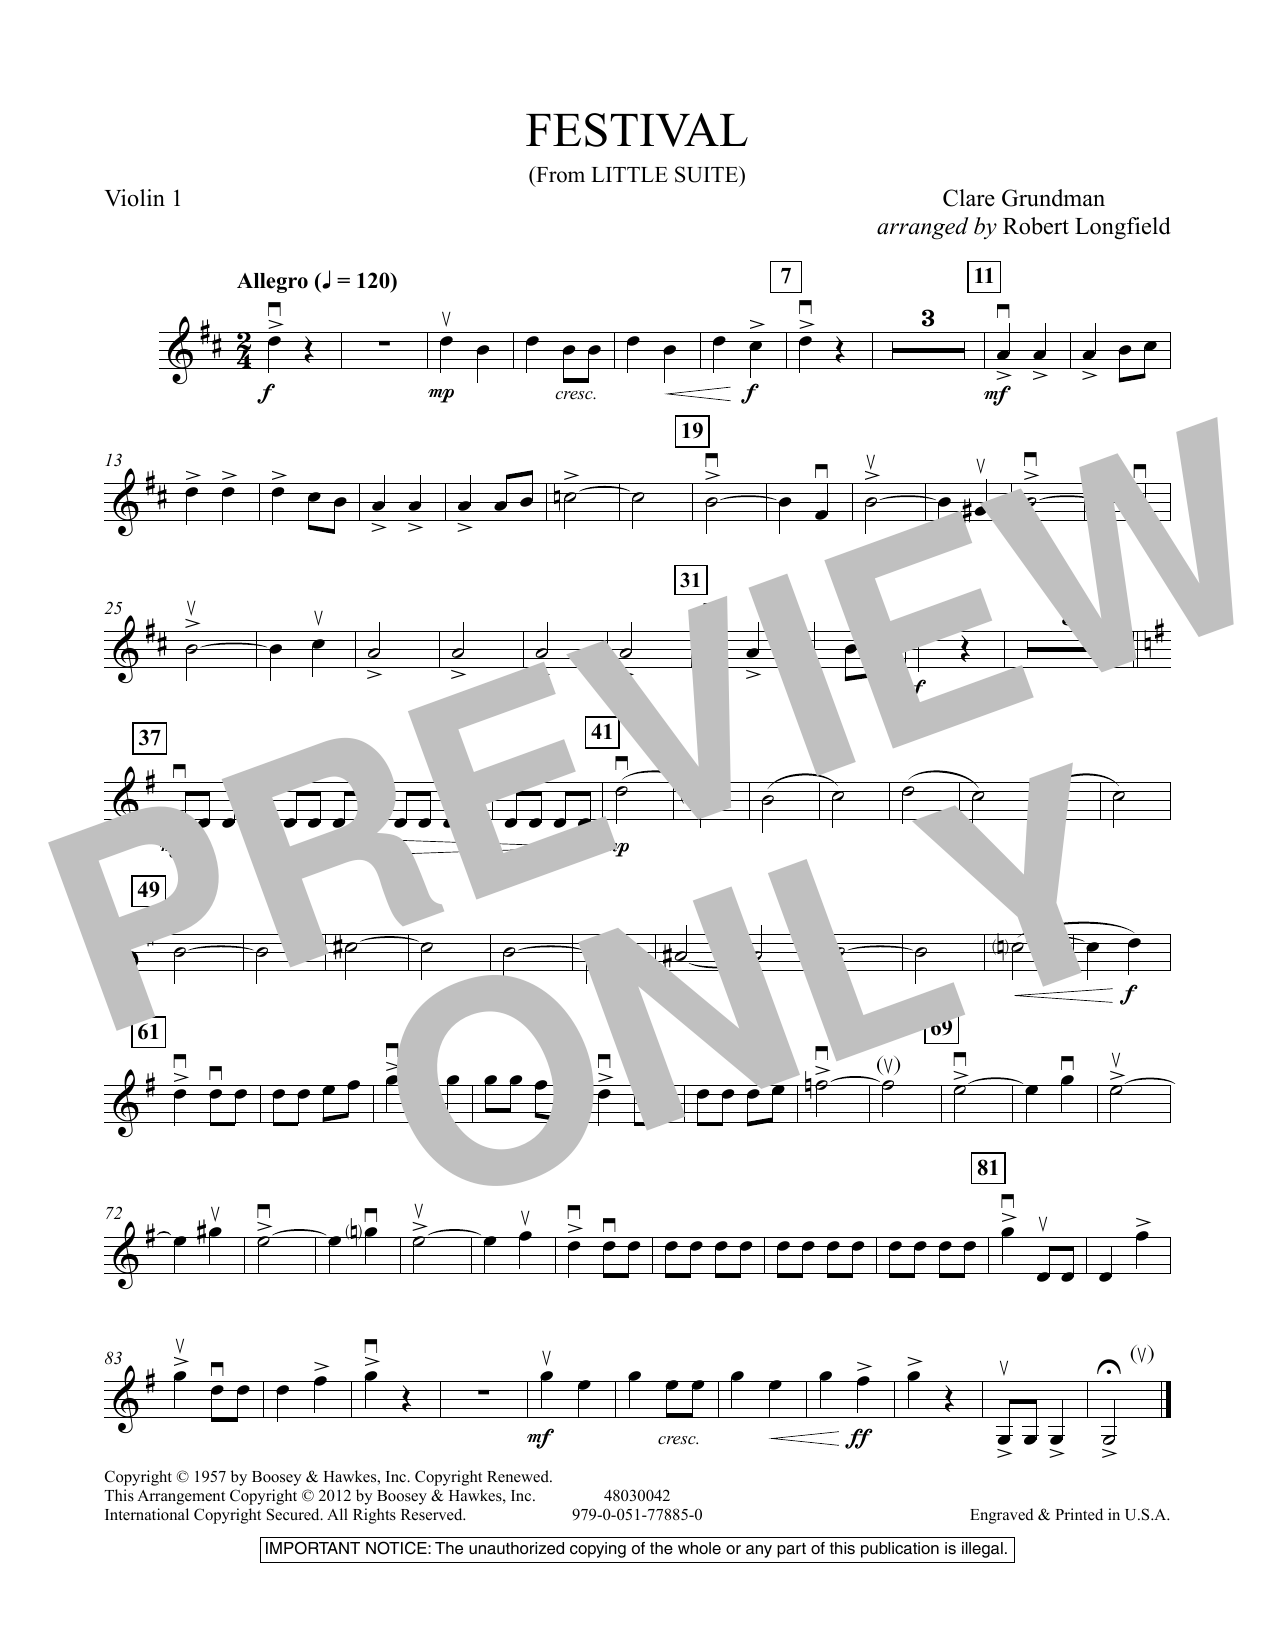 Festival (from Little Suite) - Violin 1 Sheet Music